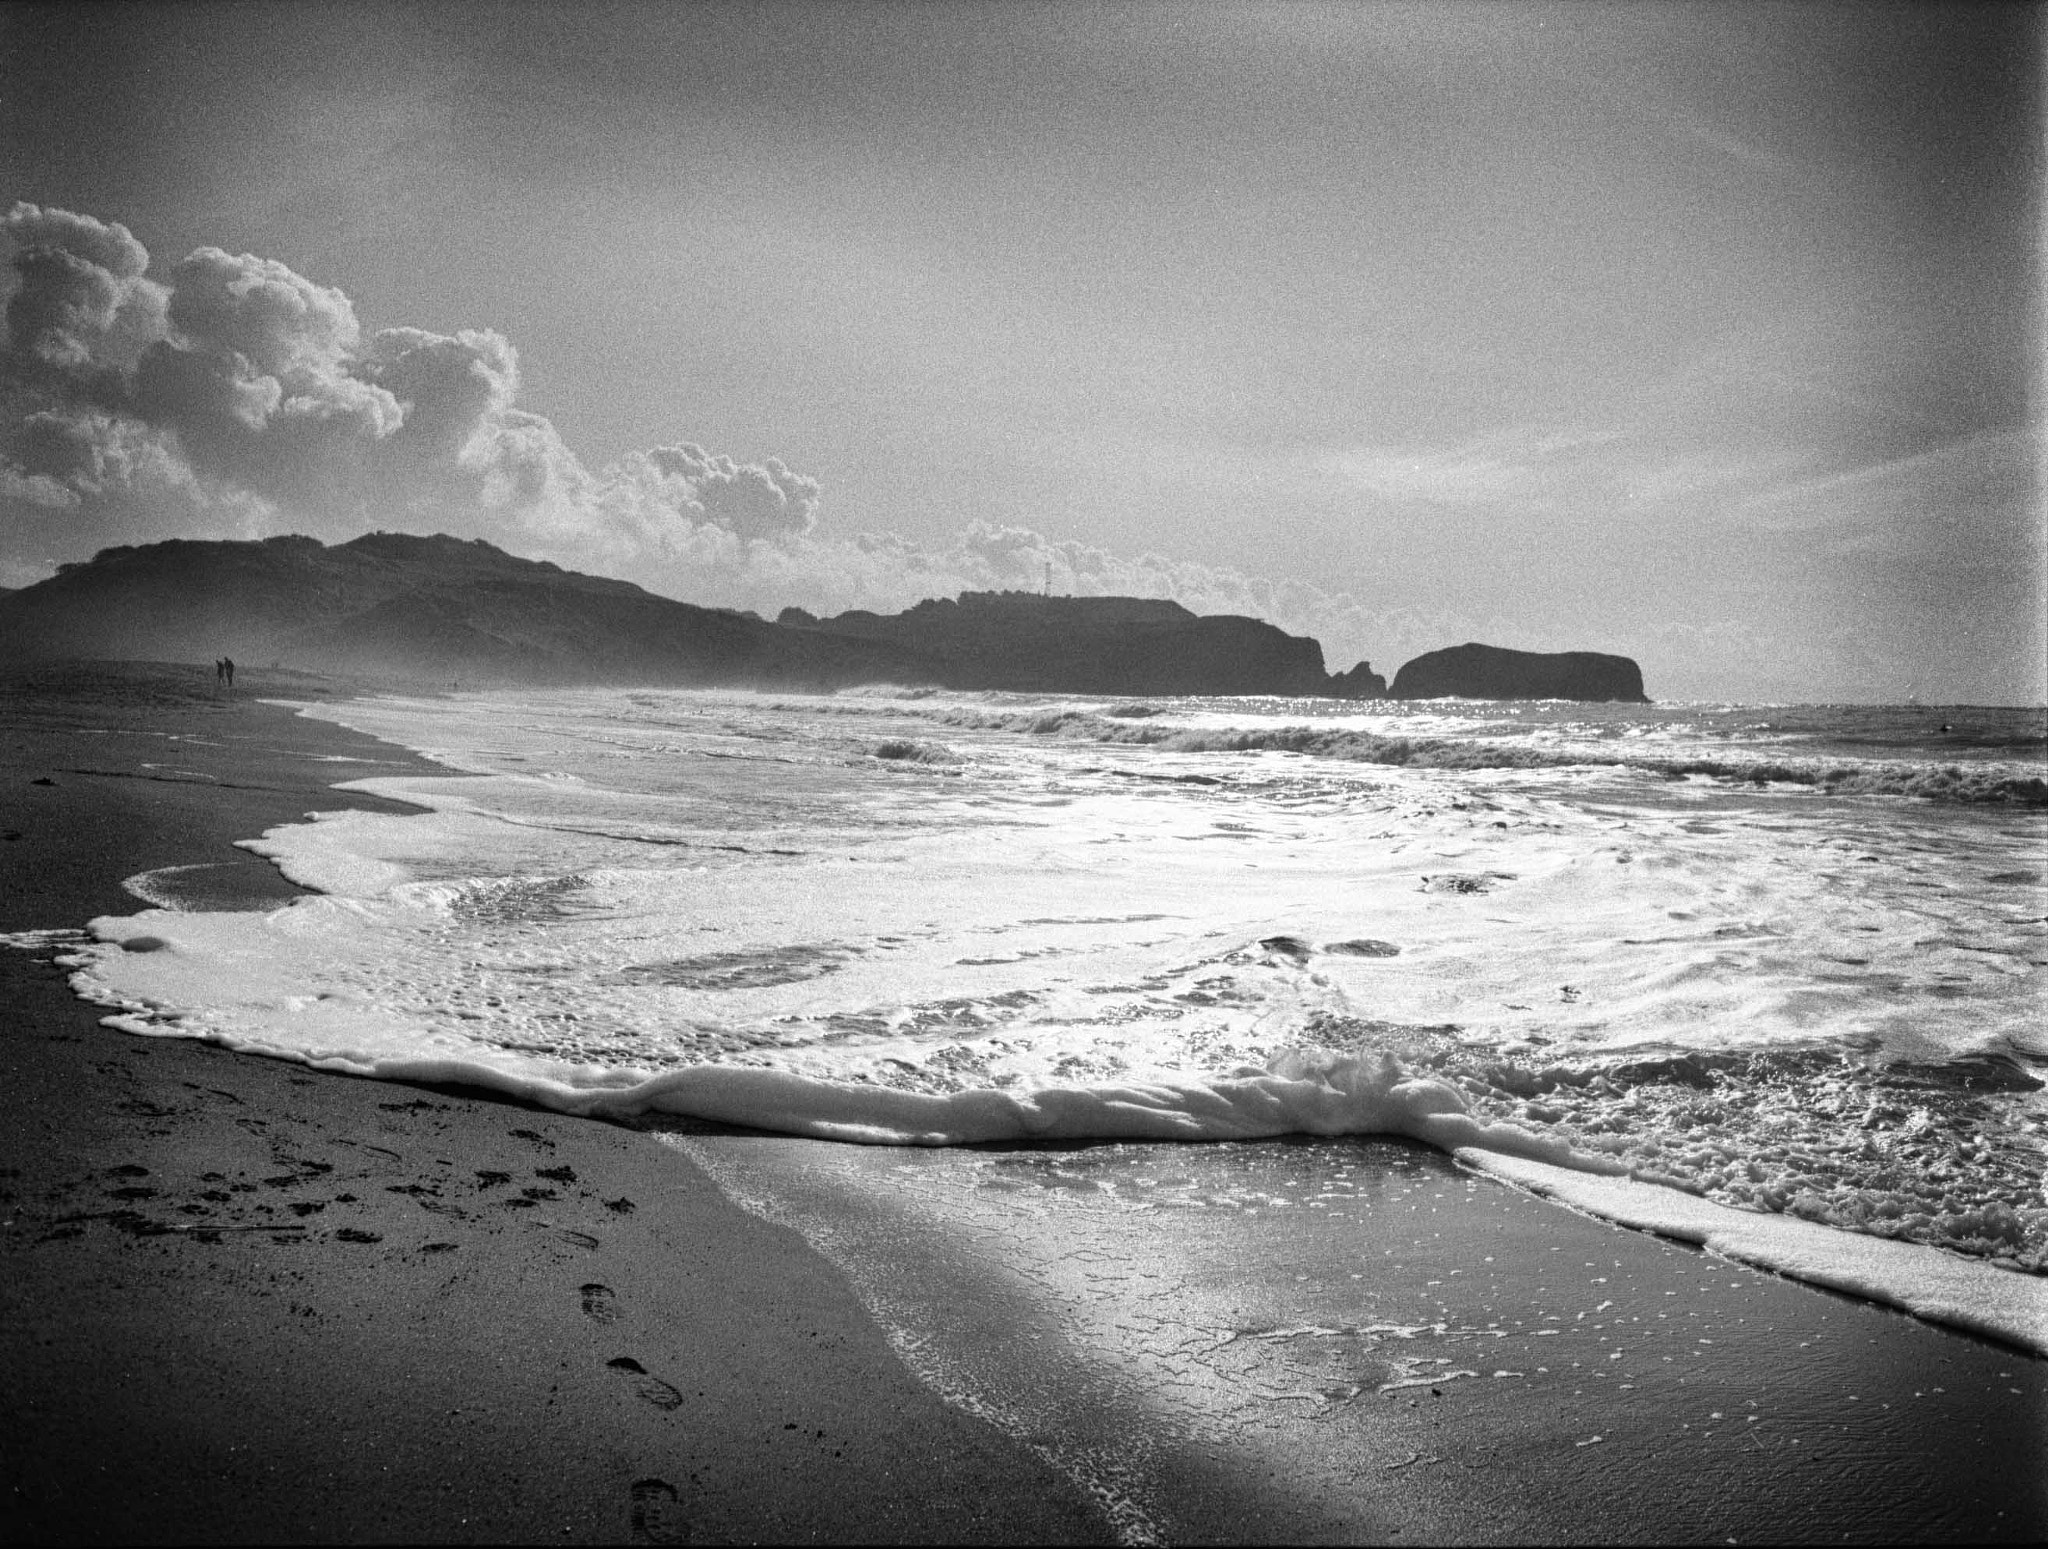 Photograph HIgh Tide by Natalie Nesser on 500px